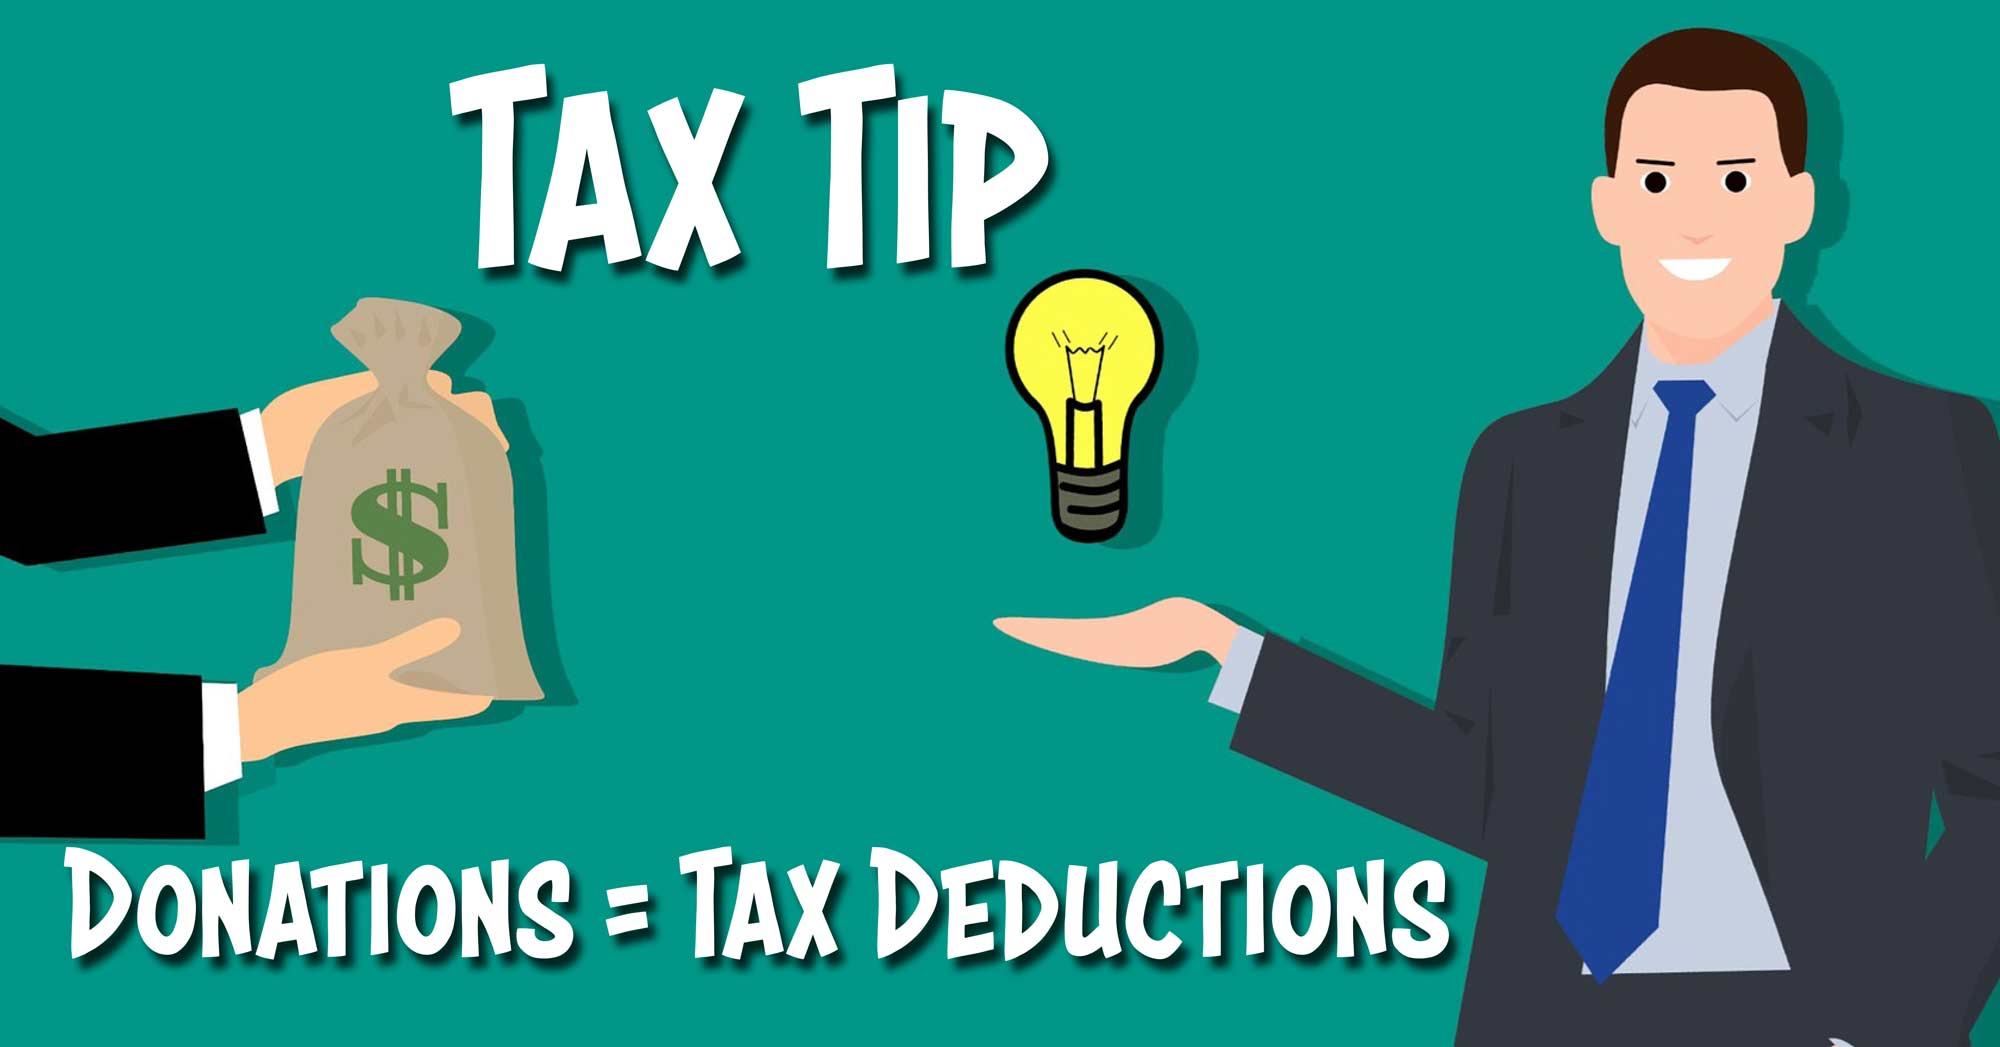 Tax tip picture about donations